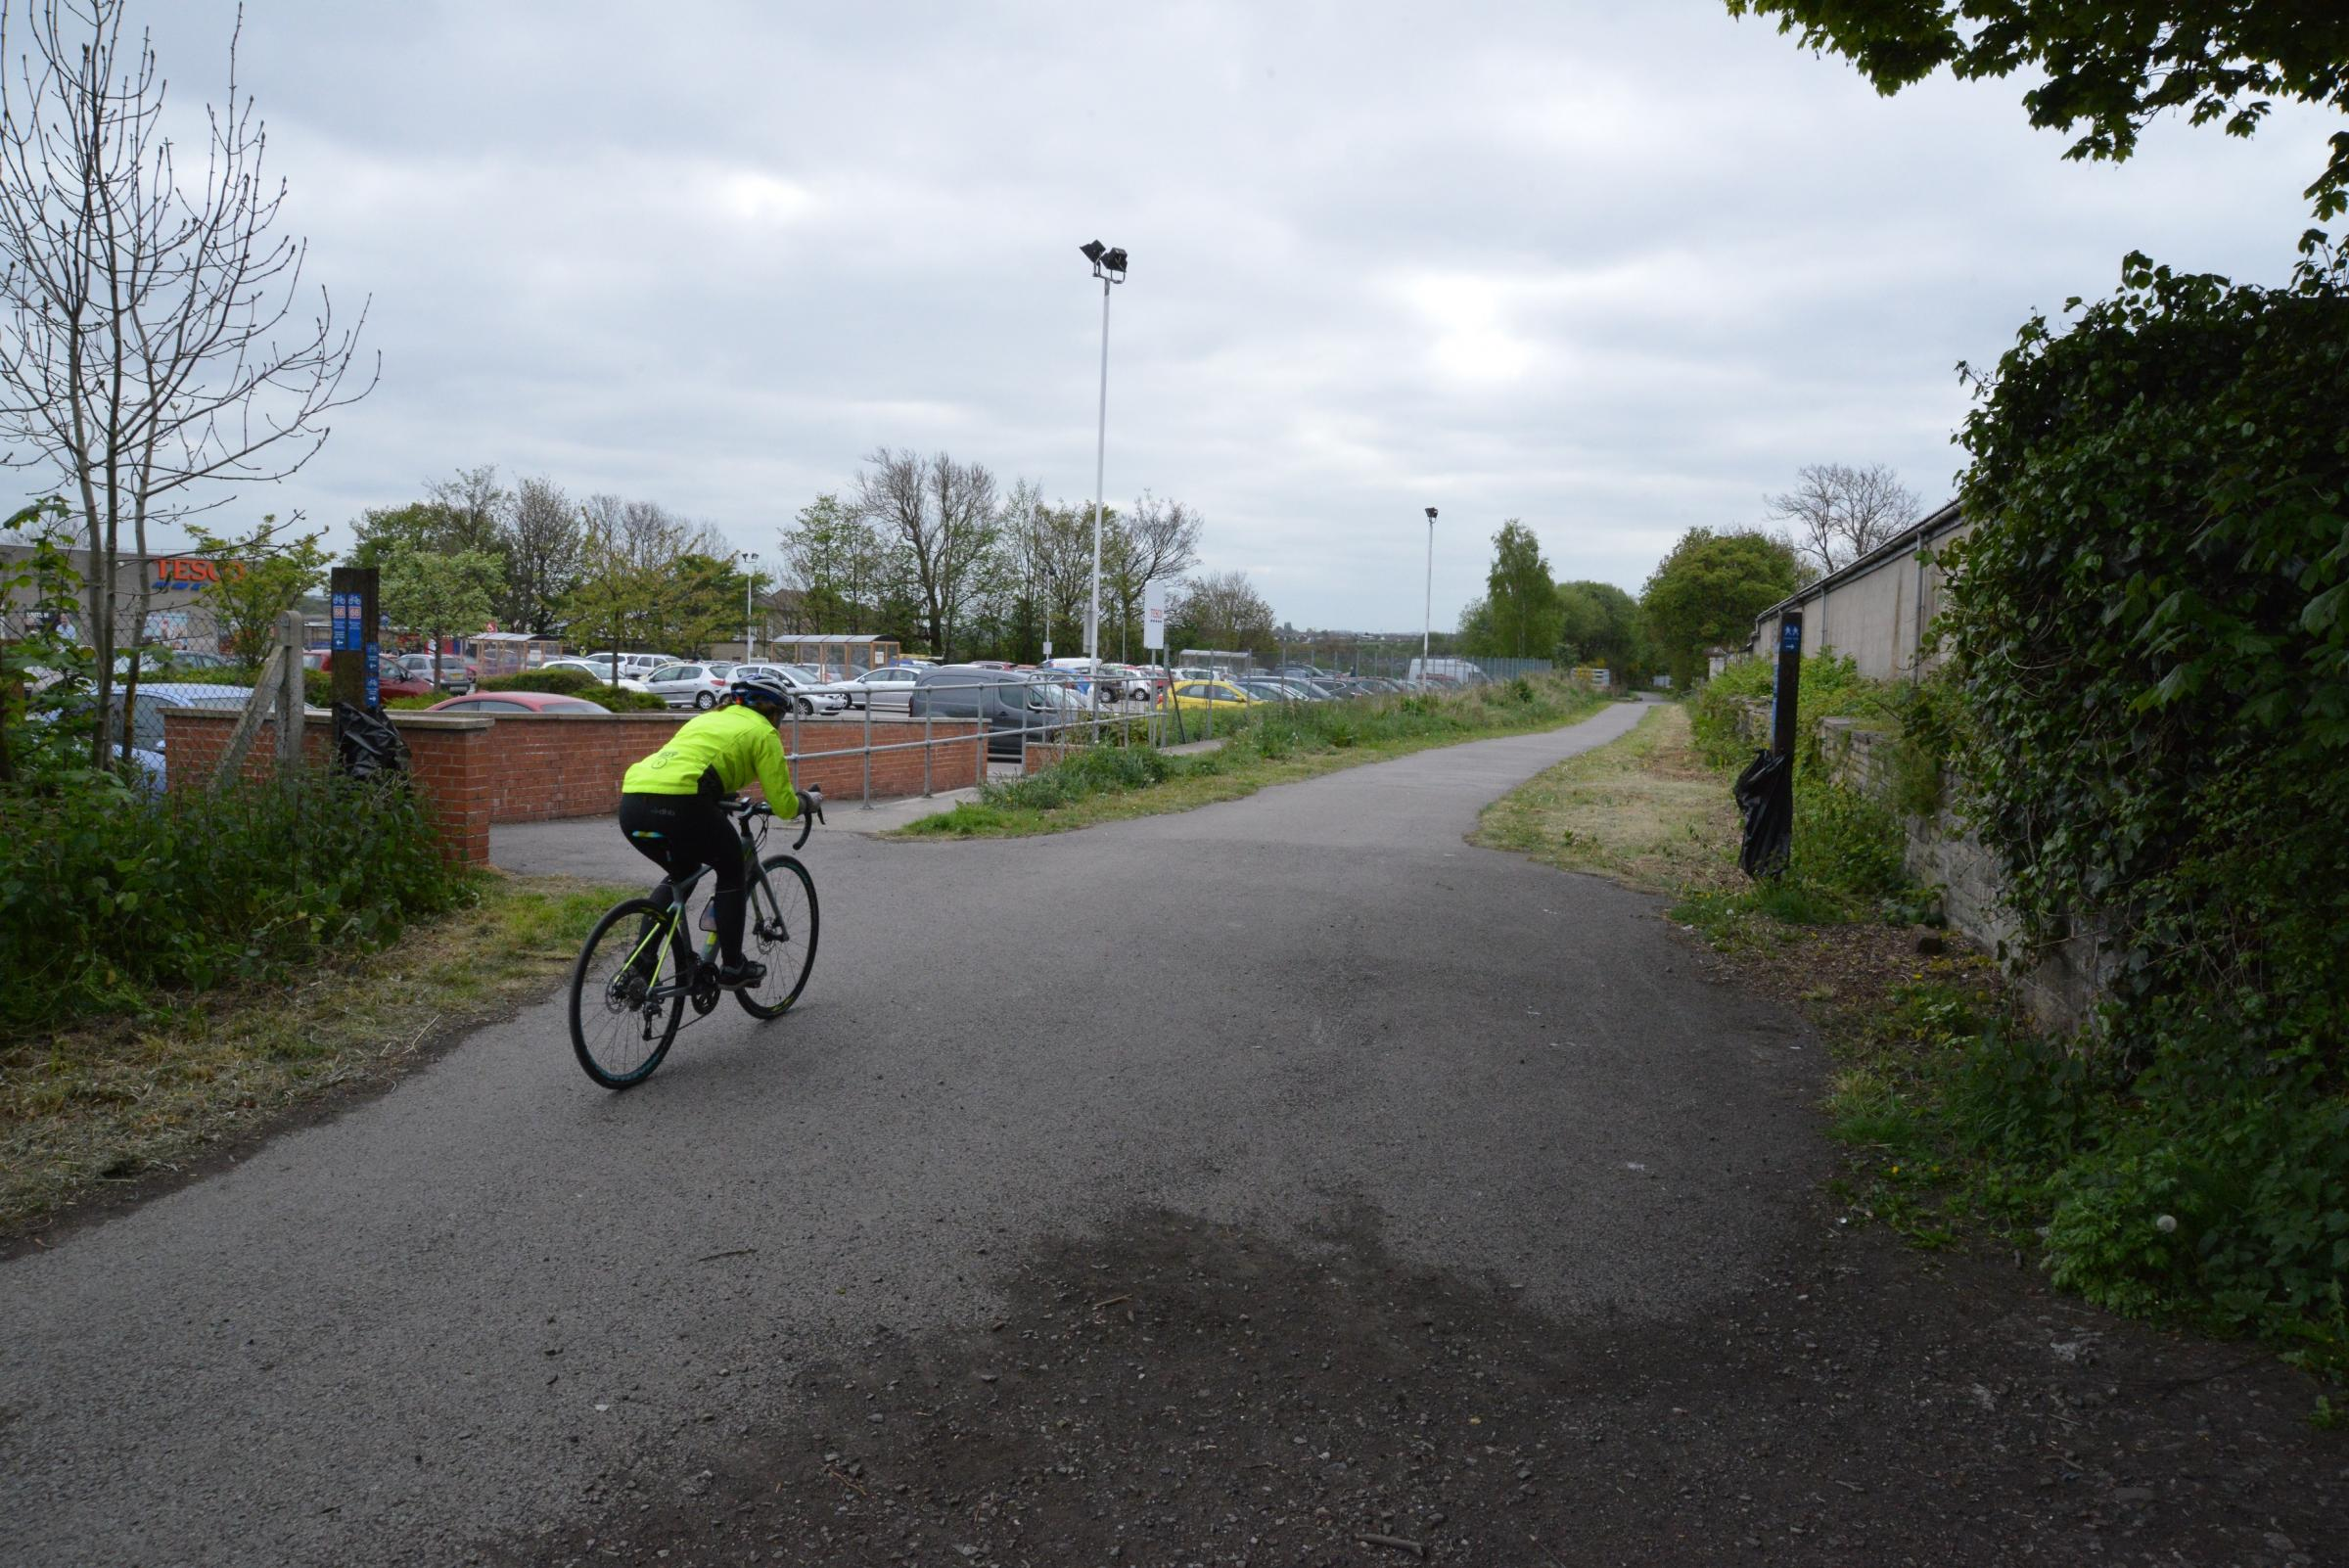 The cycle network, including the Spen Valley greenway, is to be reviewed